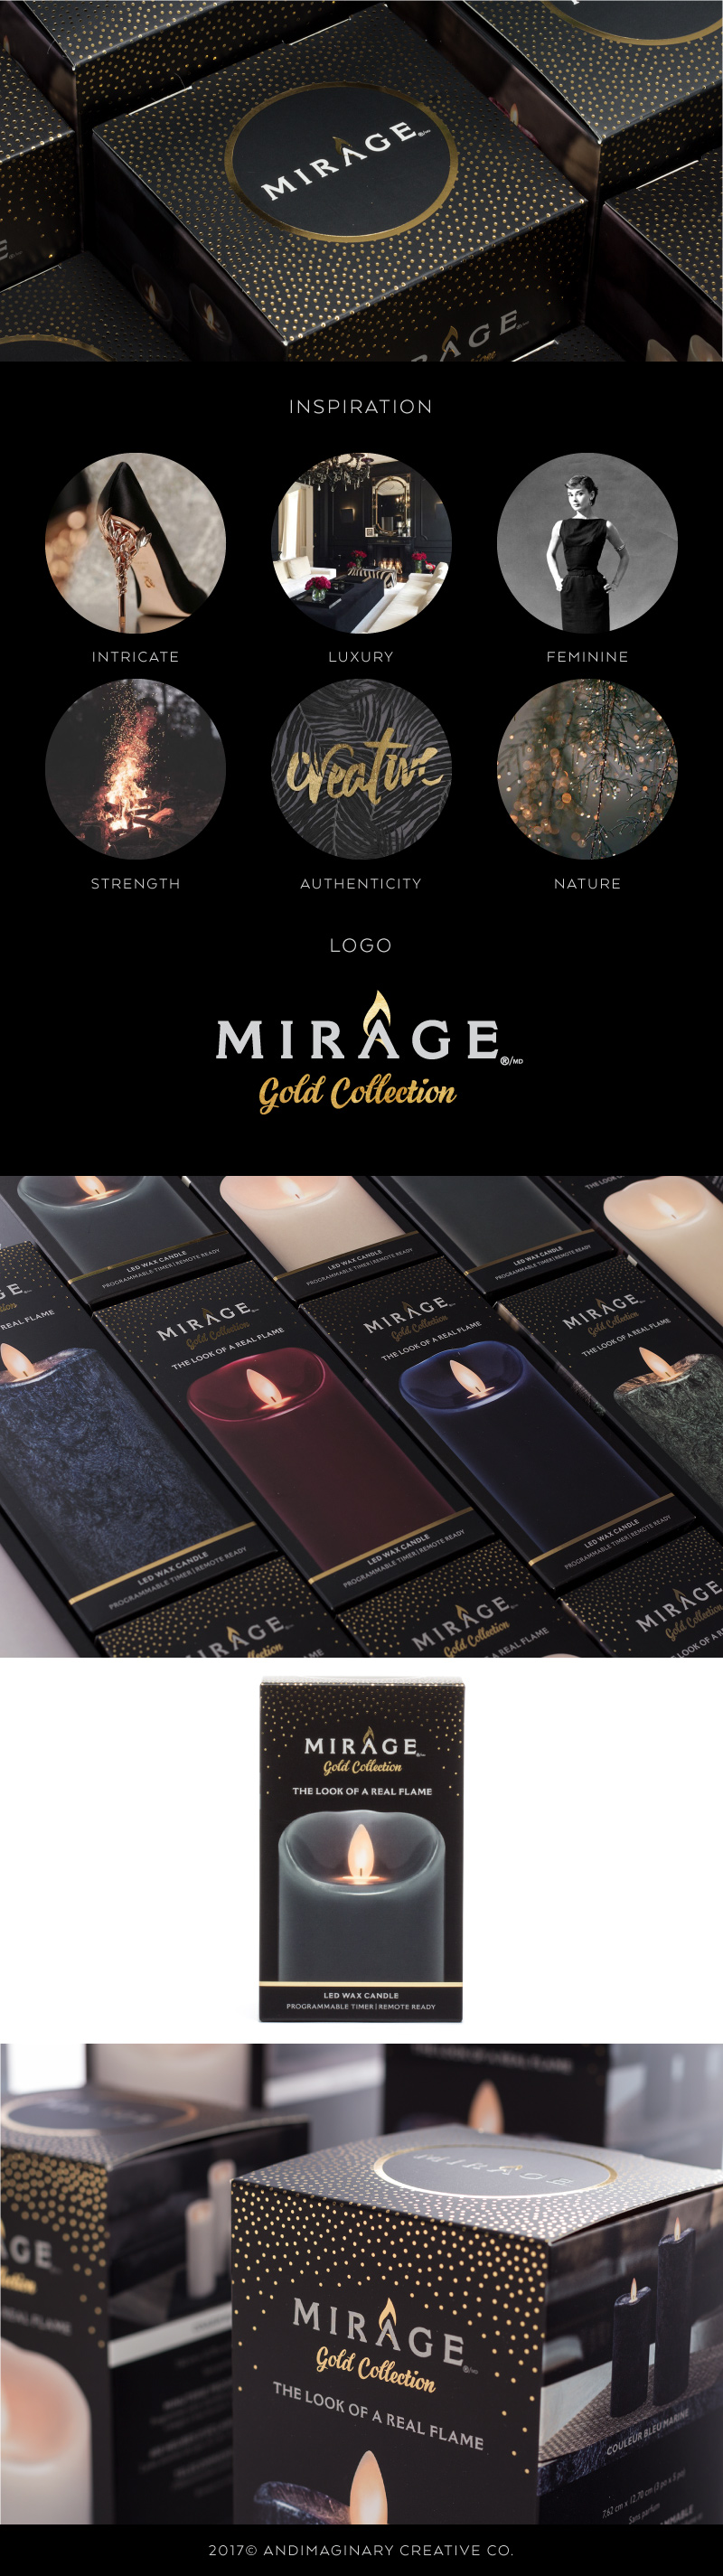 Package Design for Mirage Gold high-end LED wax candles - designed by Andimaginary Creative Co.